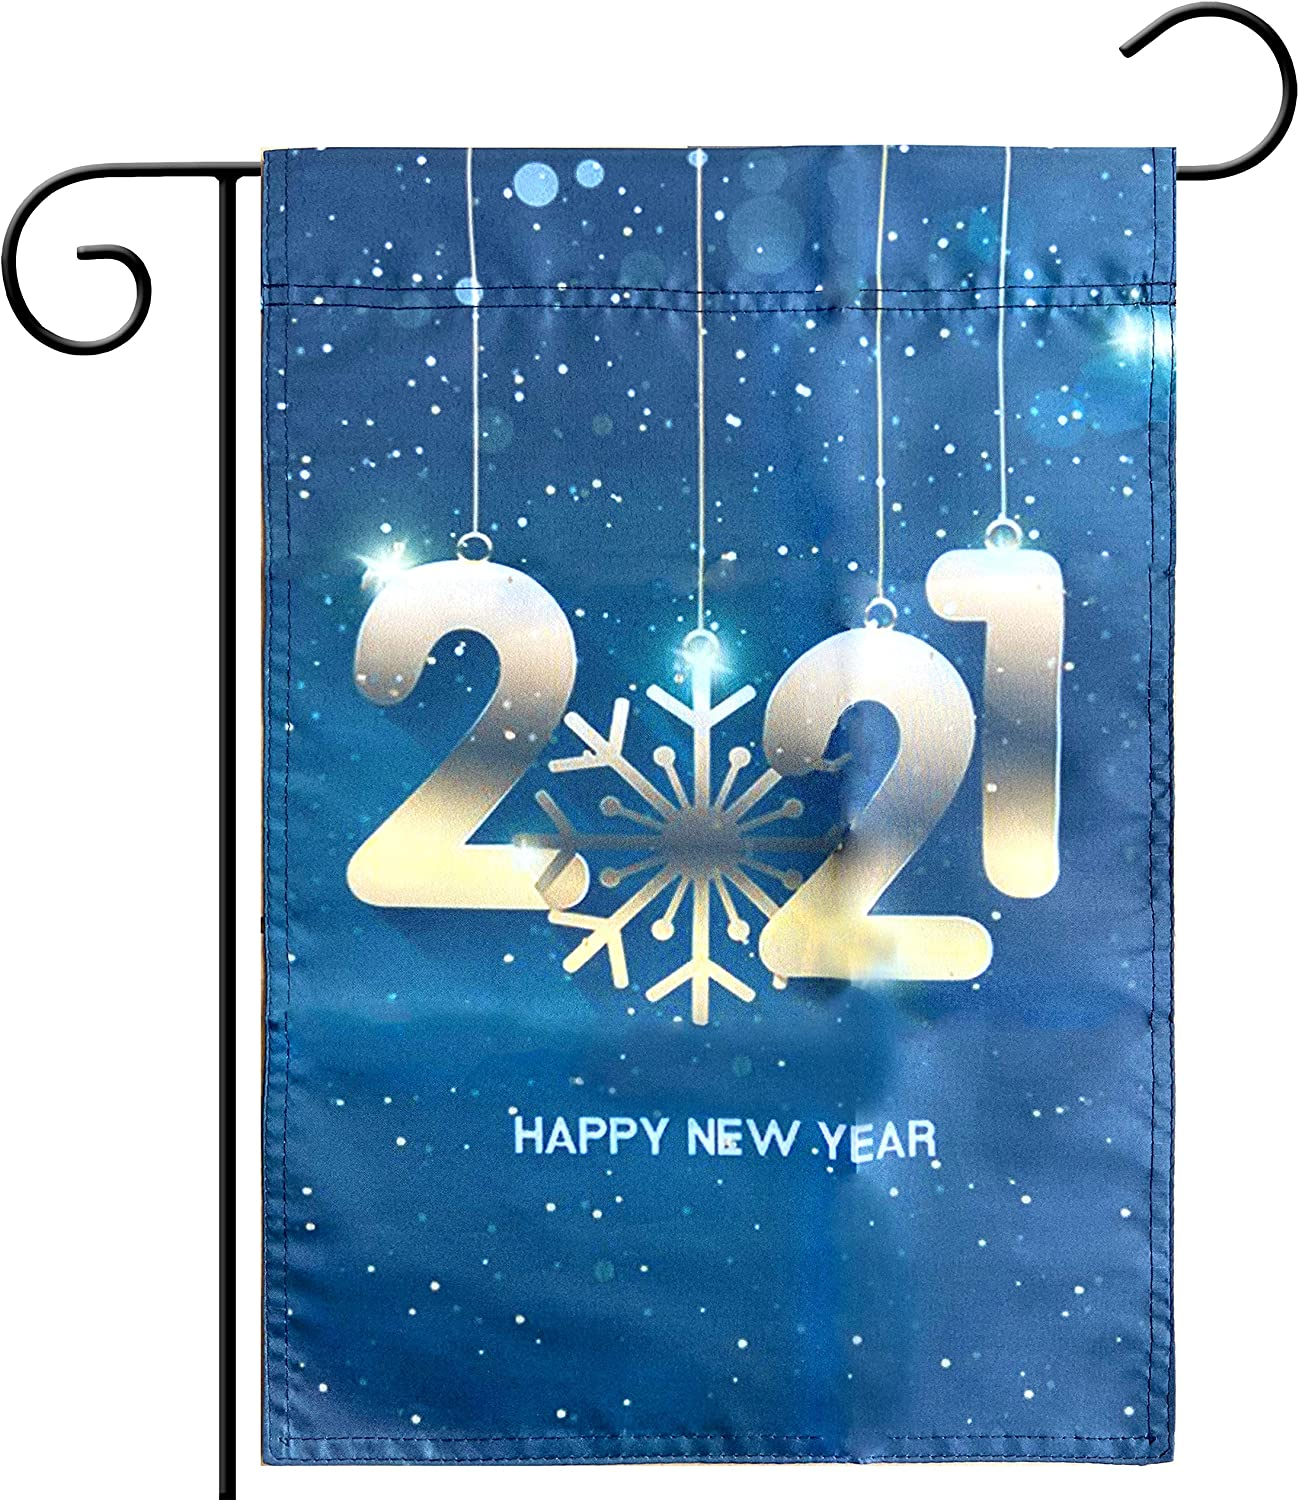 Kind Girl Winter Season Garden Flag Merry Christmas Flag Welcome Garden Flag,Happy New Year 2021 Snowflakes and Stars Flag Decorative House Double Sided Flag,Indoor and Outdoor Flags.